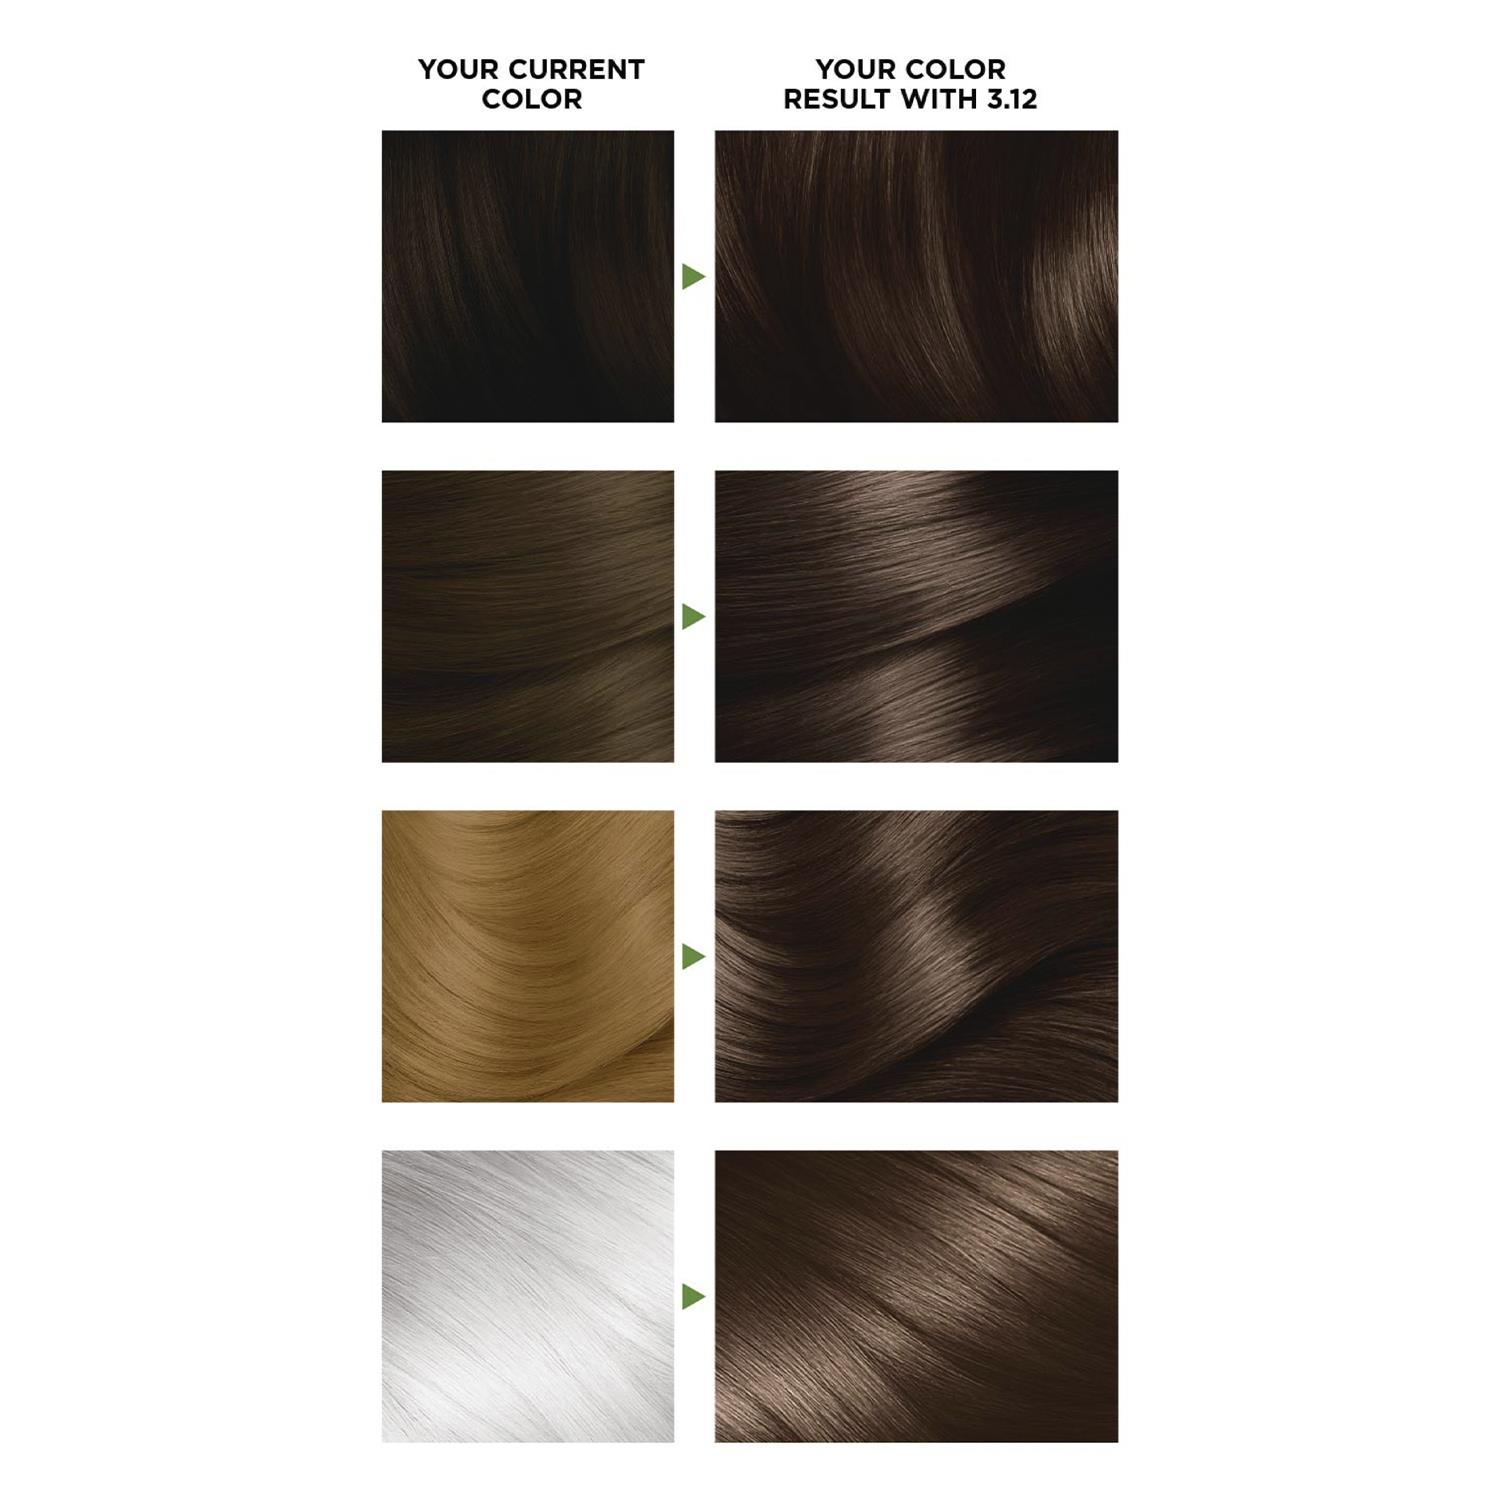 thumbnail 51 - 3 Pack Garnier Nutrisse Permanent Hair Dye With Different Shades